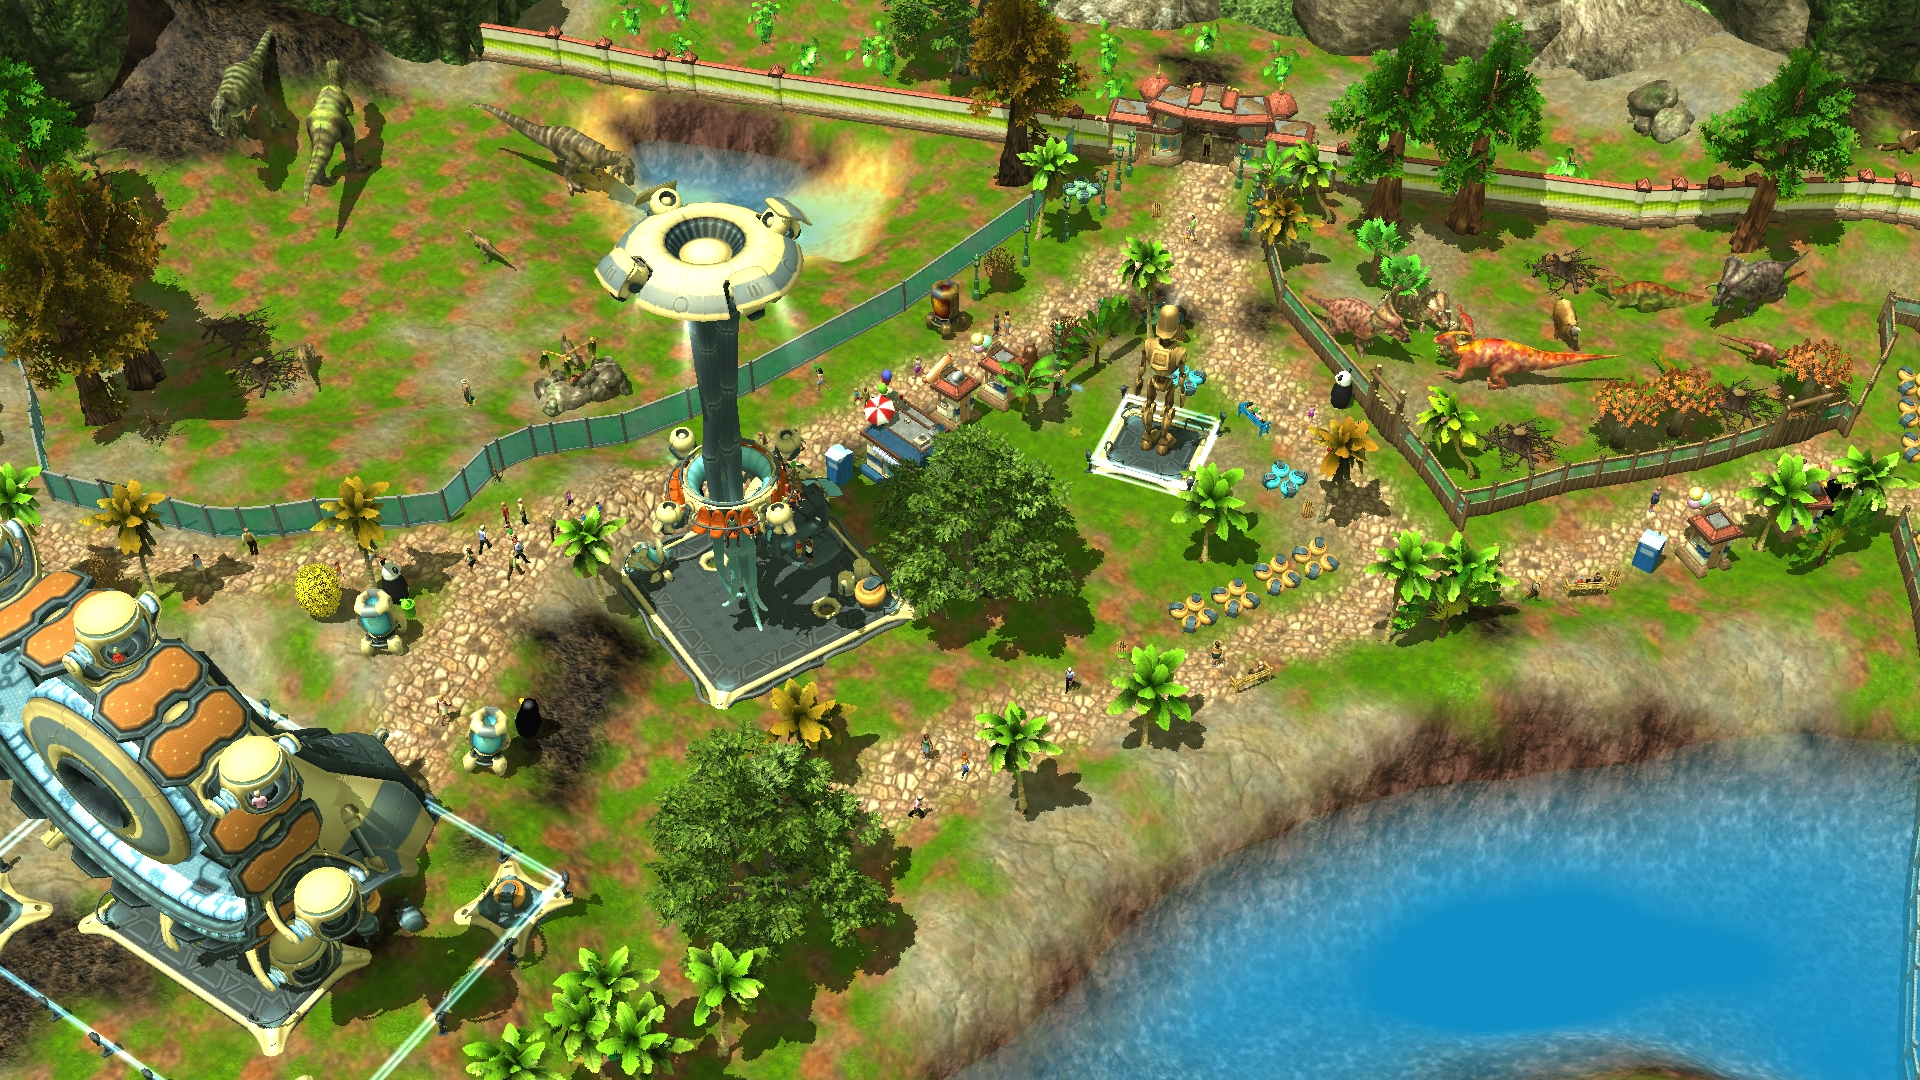 wildlife park 3 dino invasion download free full games strategy games. Black Bedroom Furniture Sets. Home Design Ideas